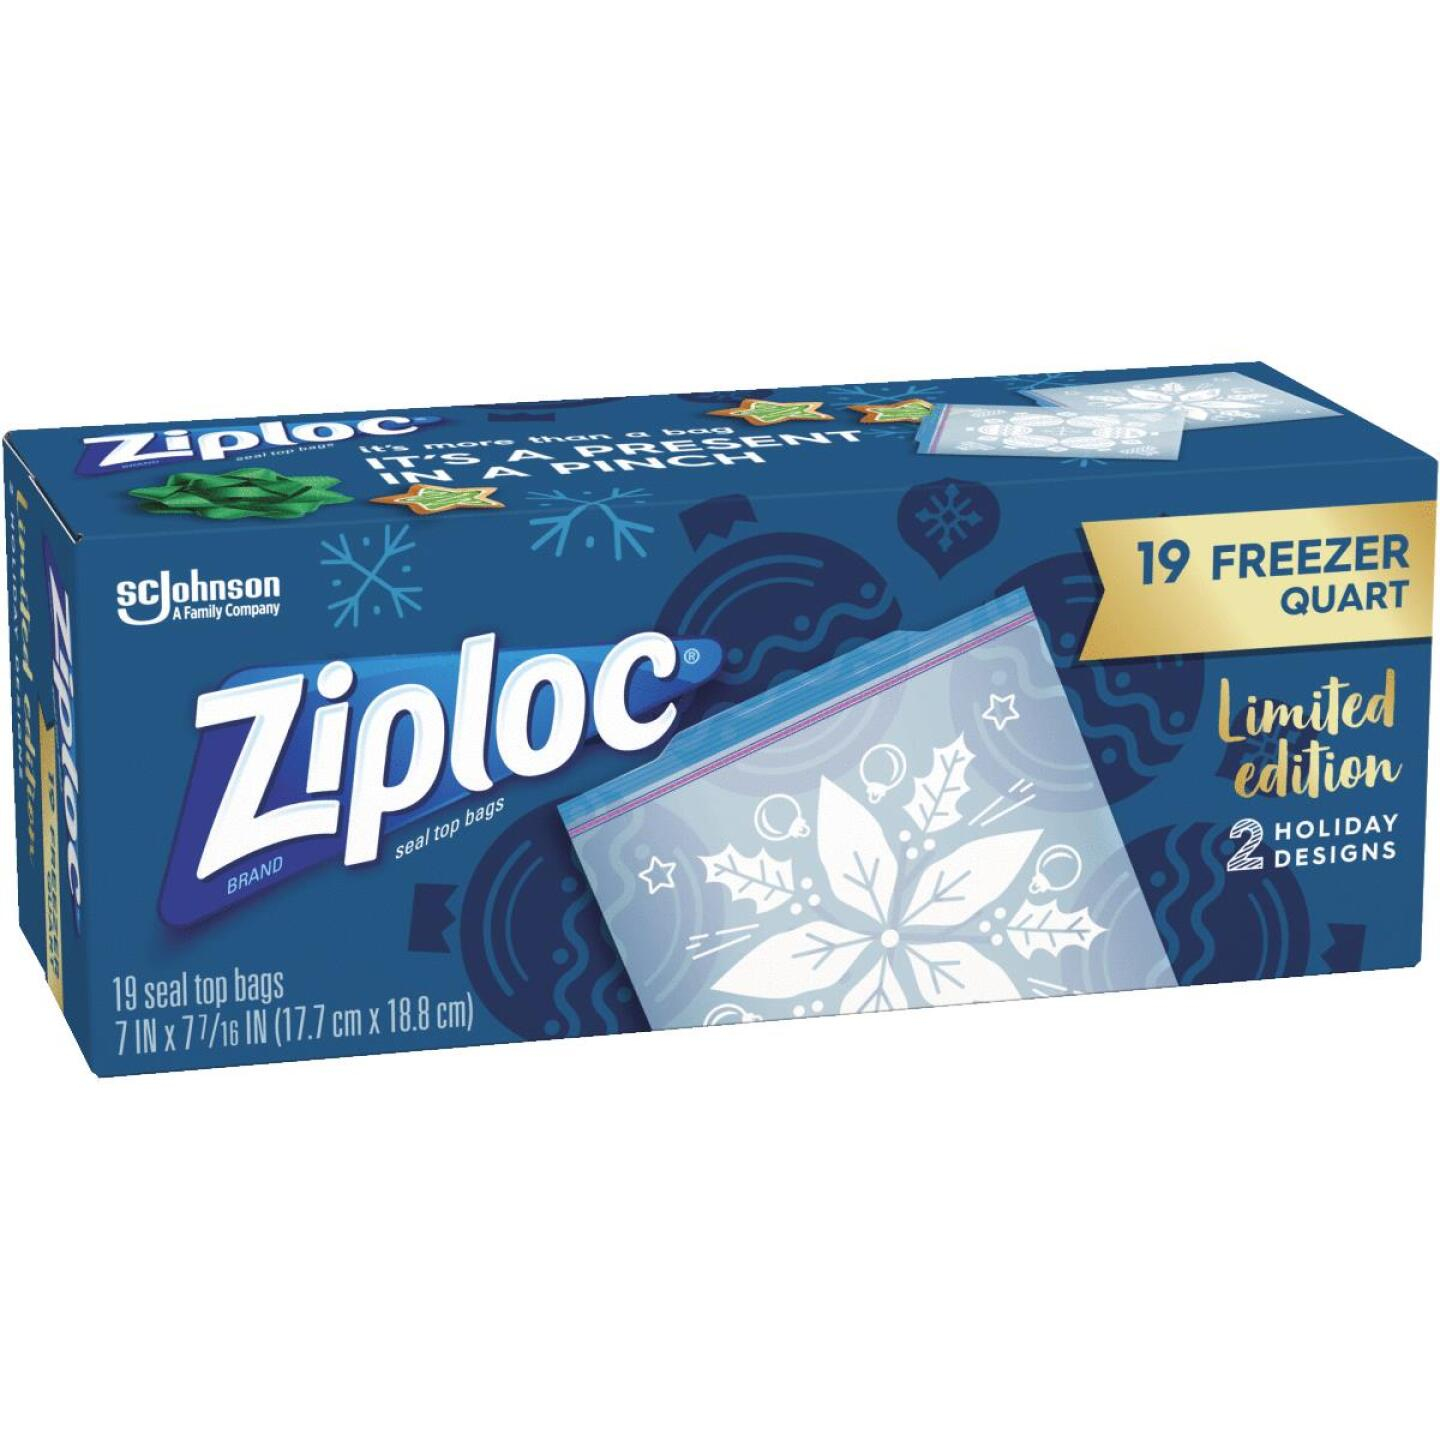 Ziploc Quart Holiday Freezer Bag (19 Count) Image 1